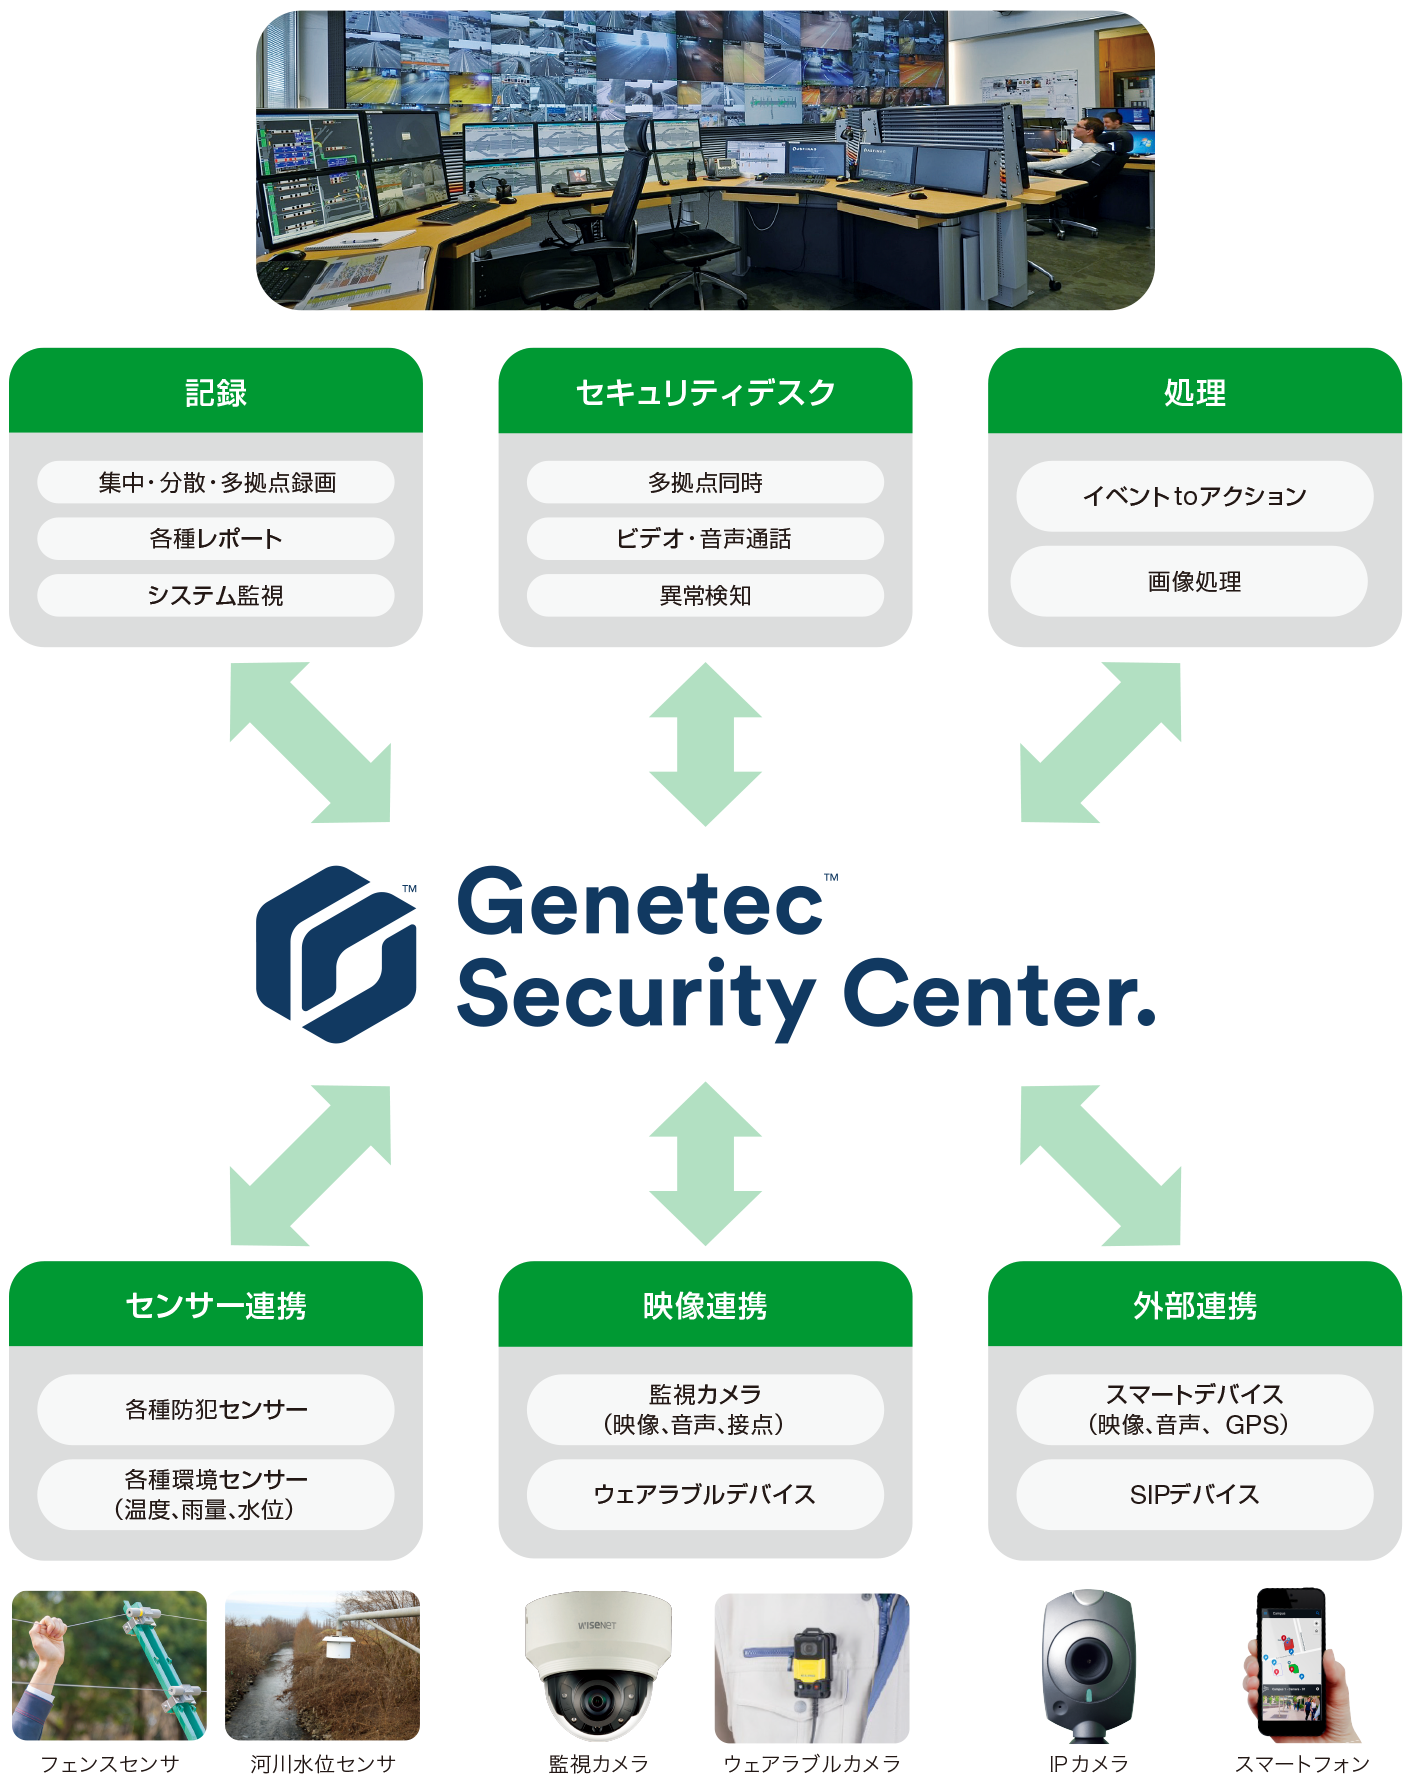 GEBTEC Security Centerの概要図